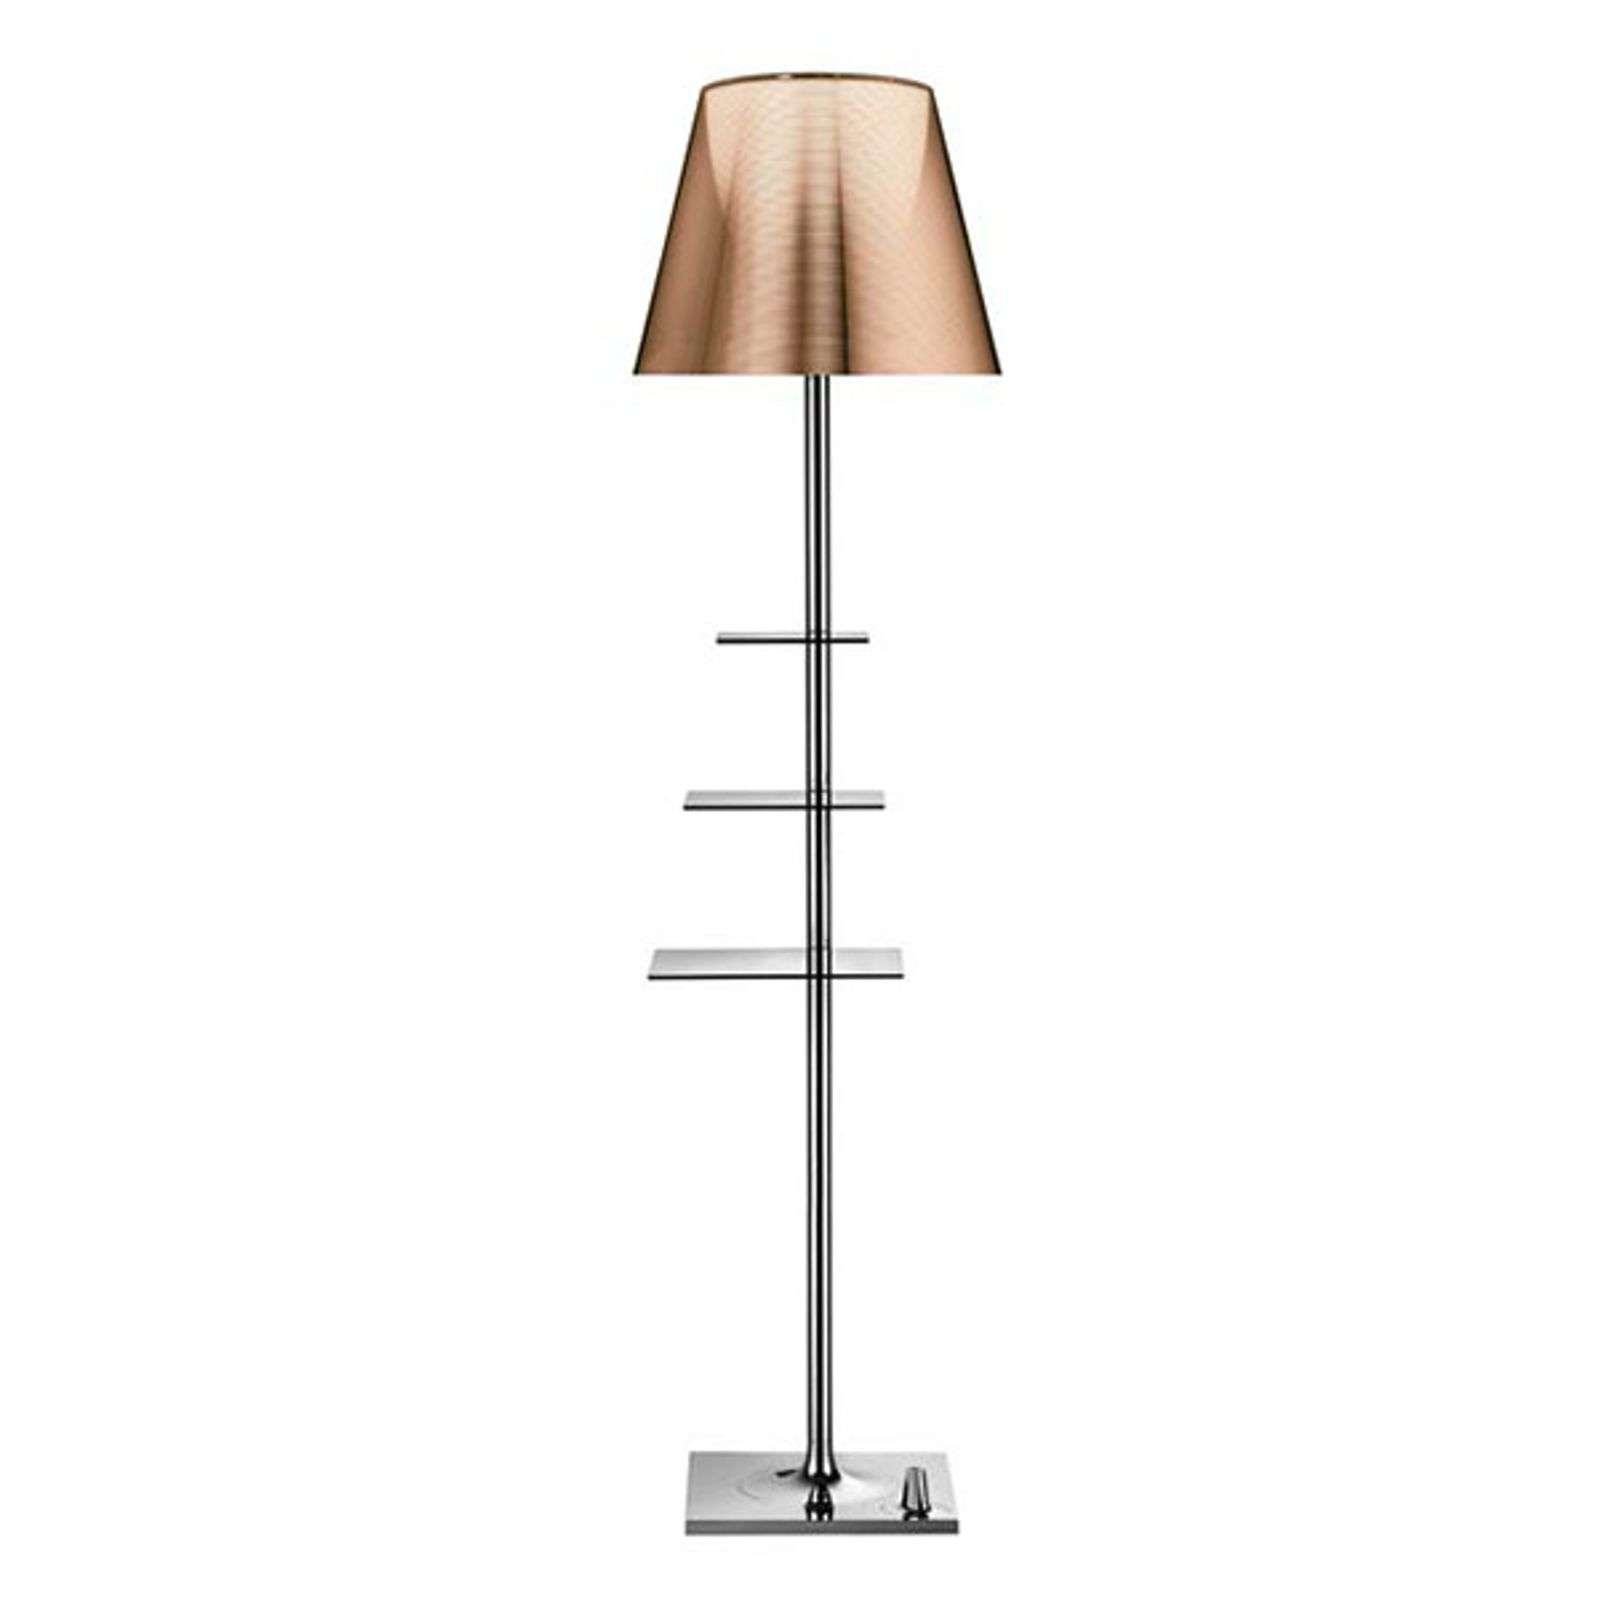 Design-vloerlamp Bibliotheque Nationale, brons